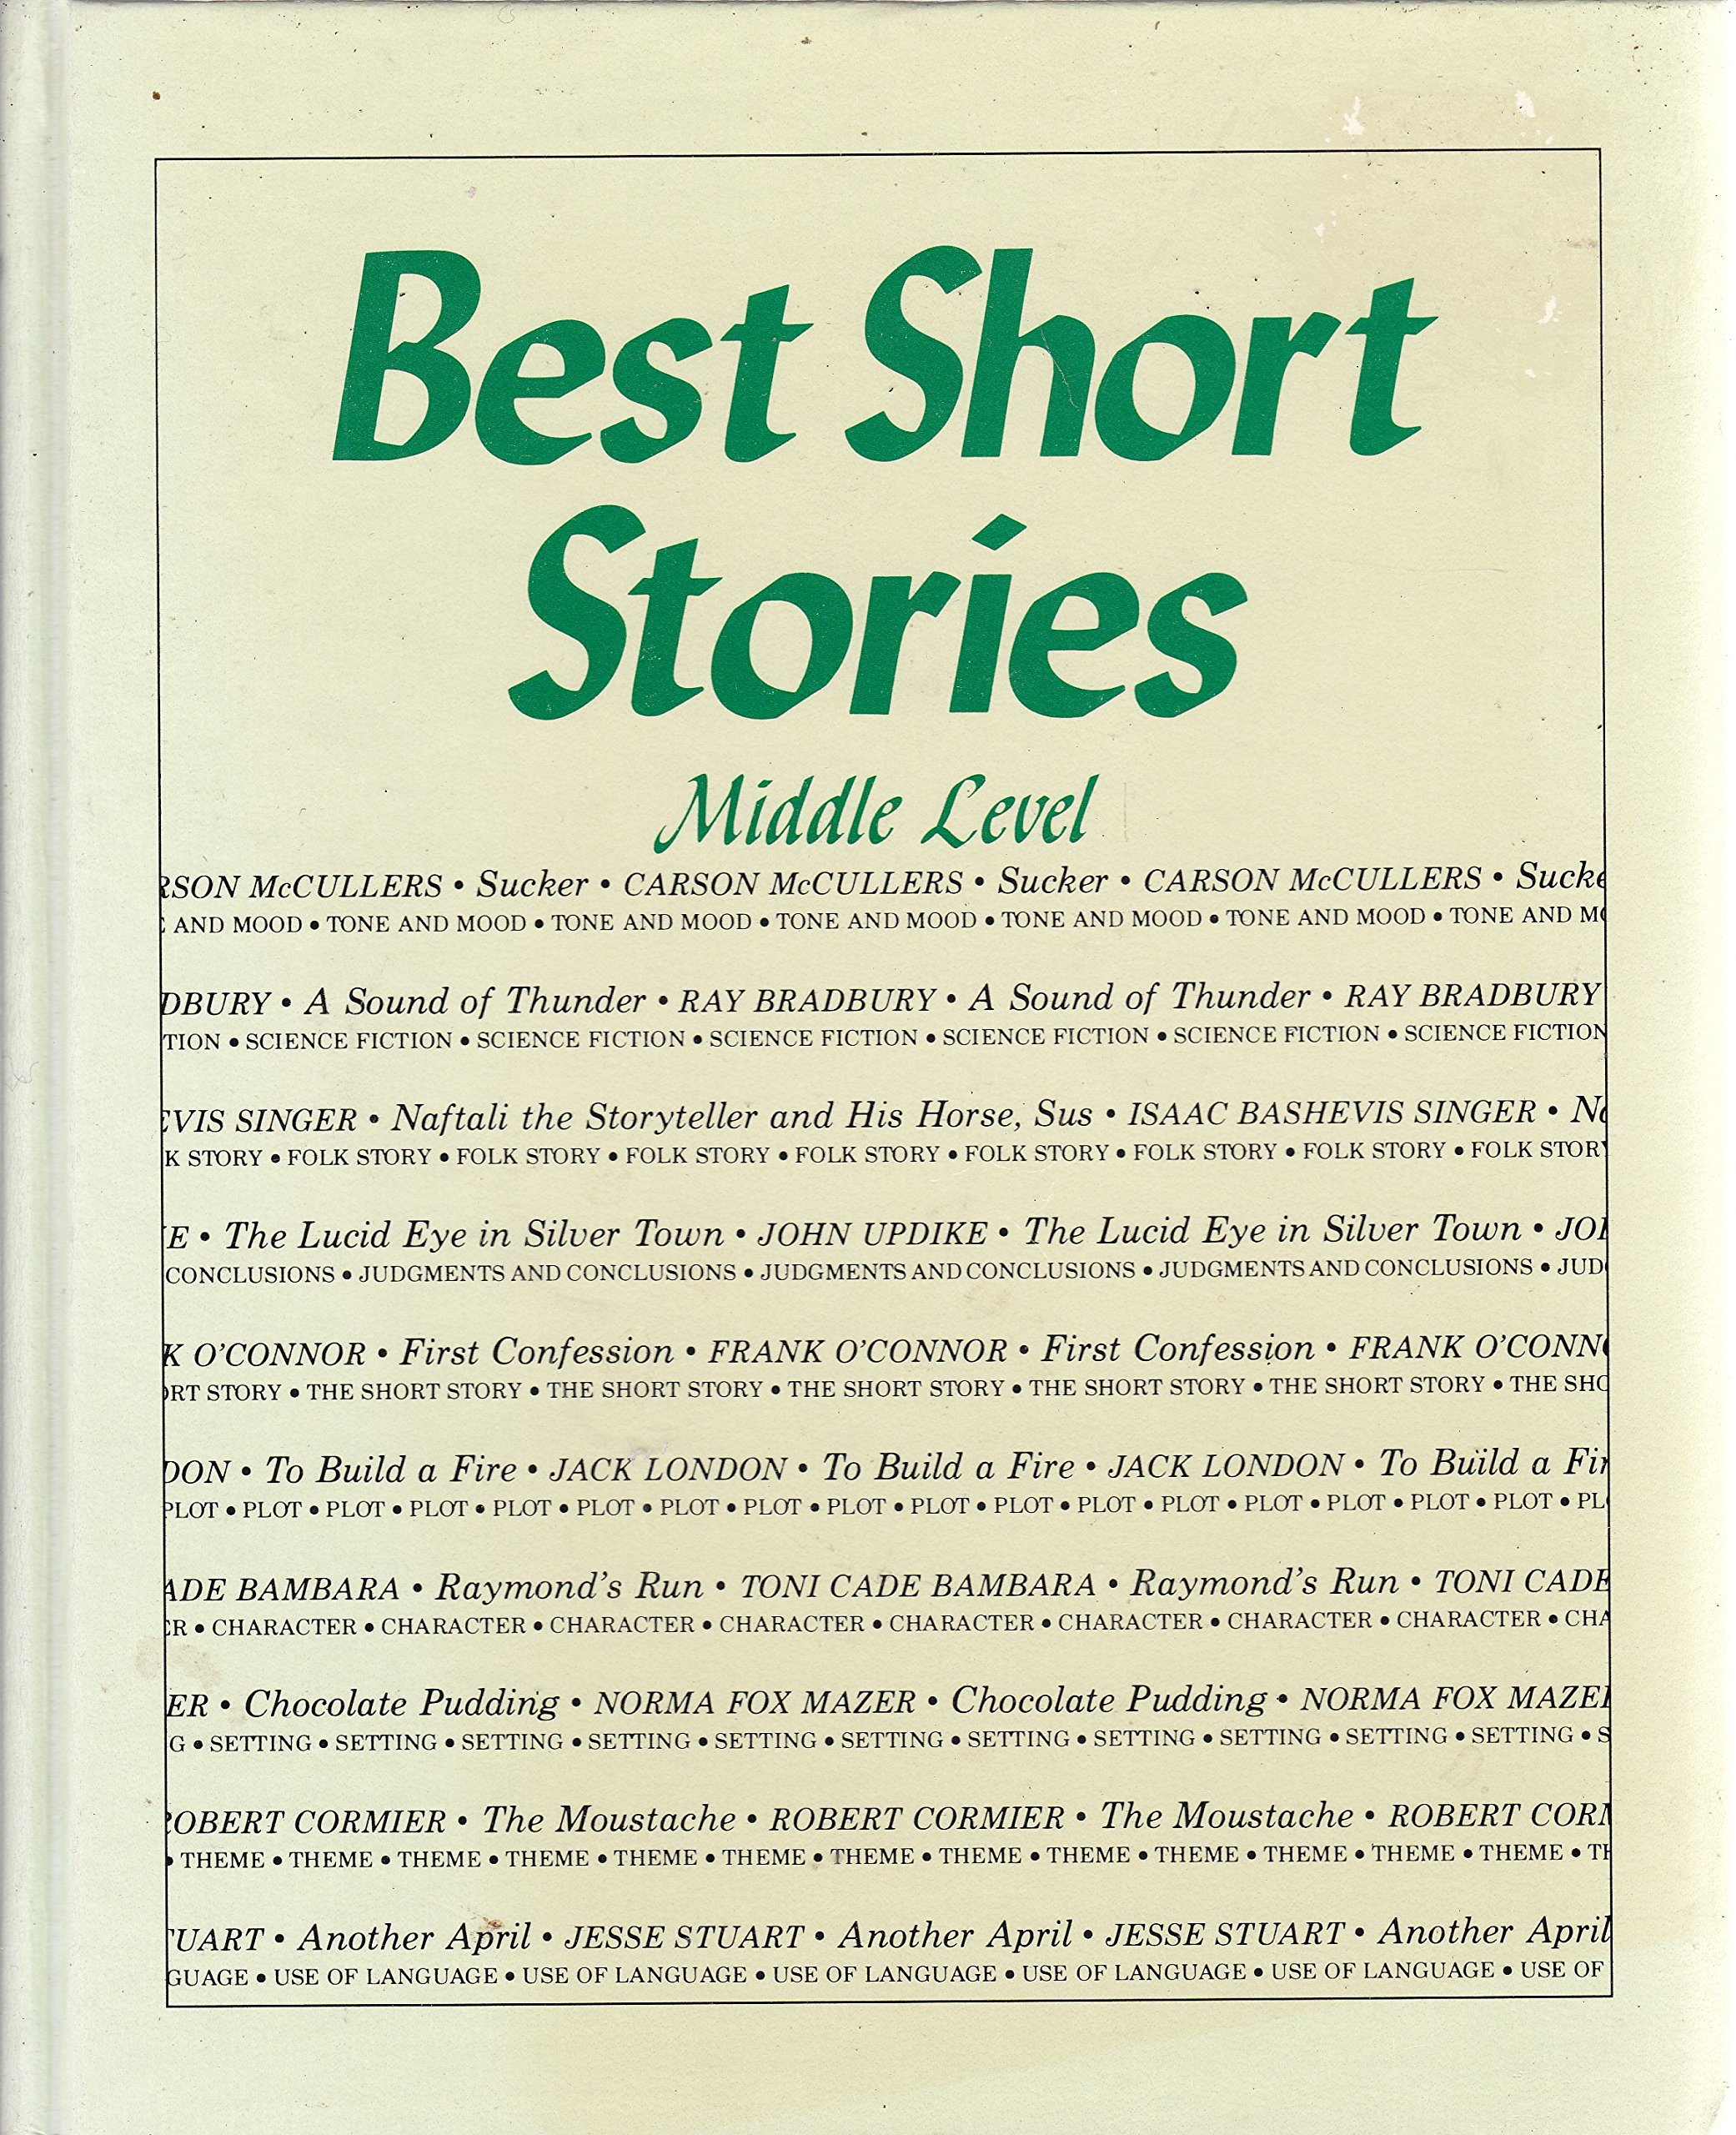 Best Short Stories, Middle Level (10 Stories for Young Adults - With